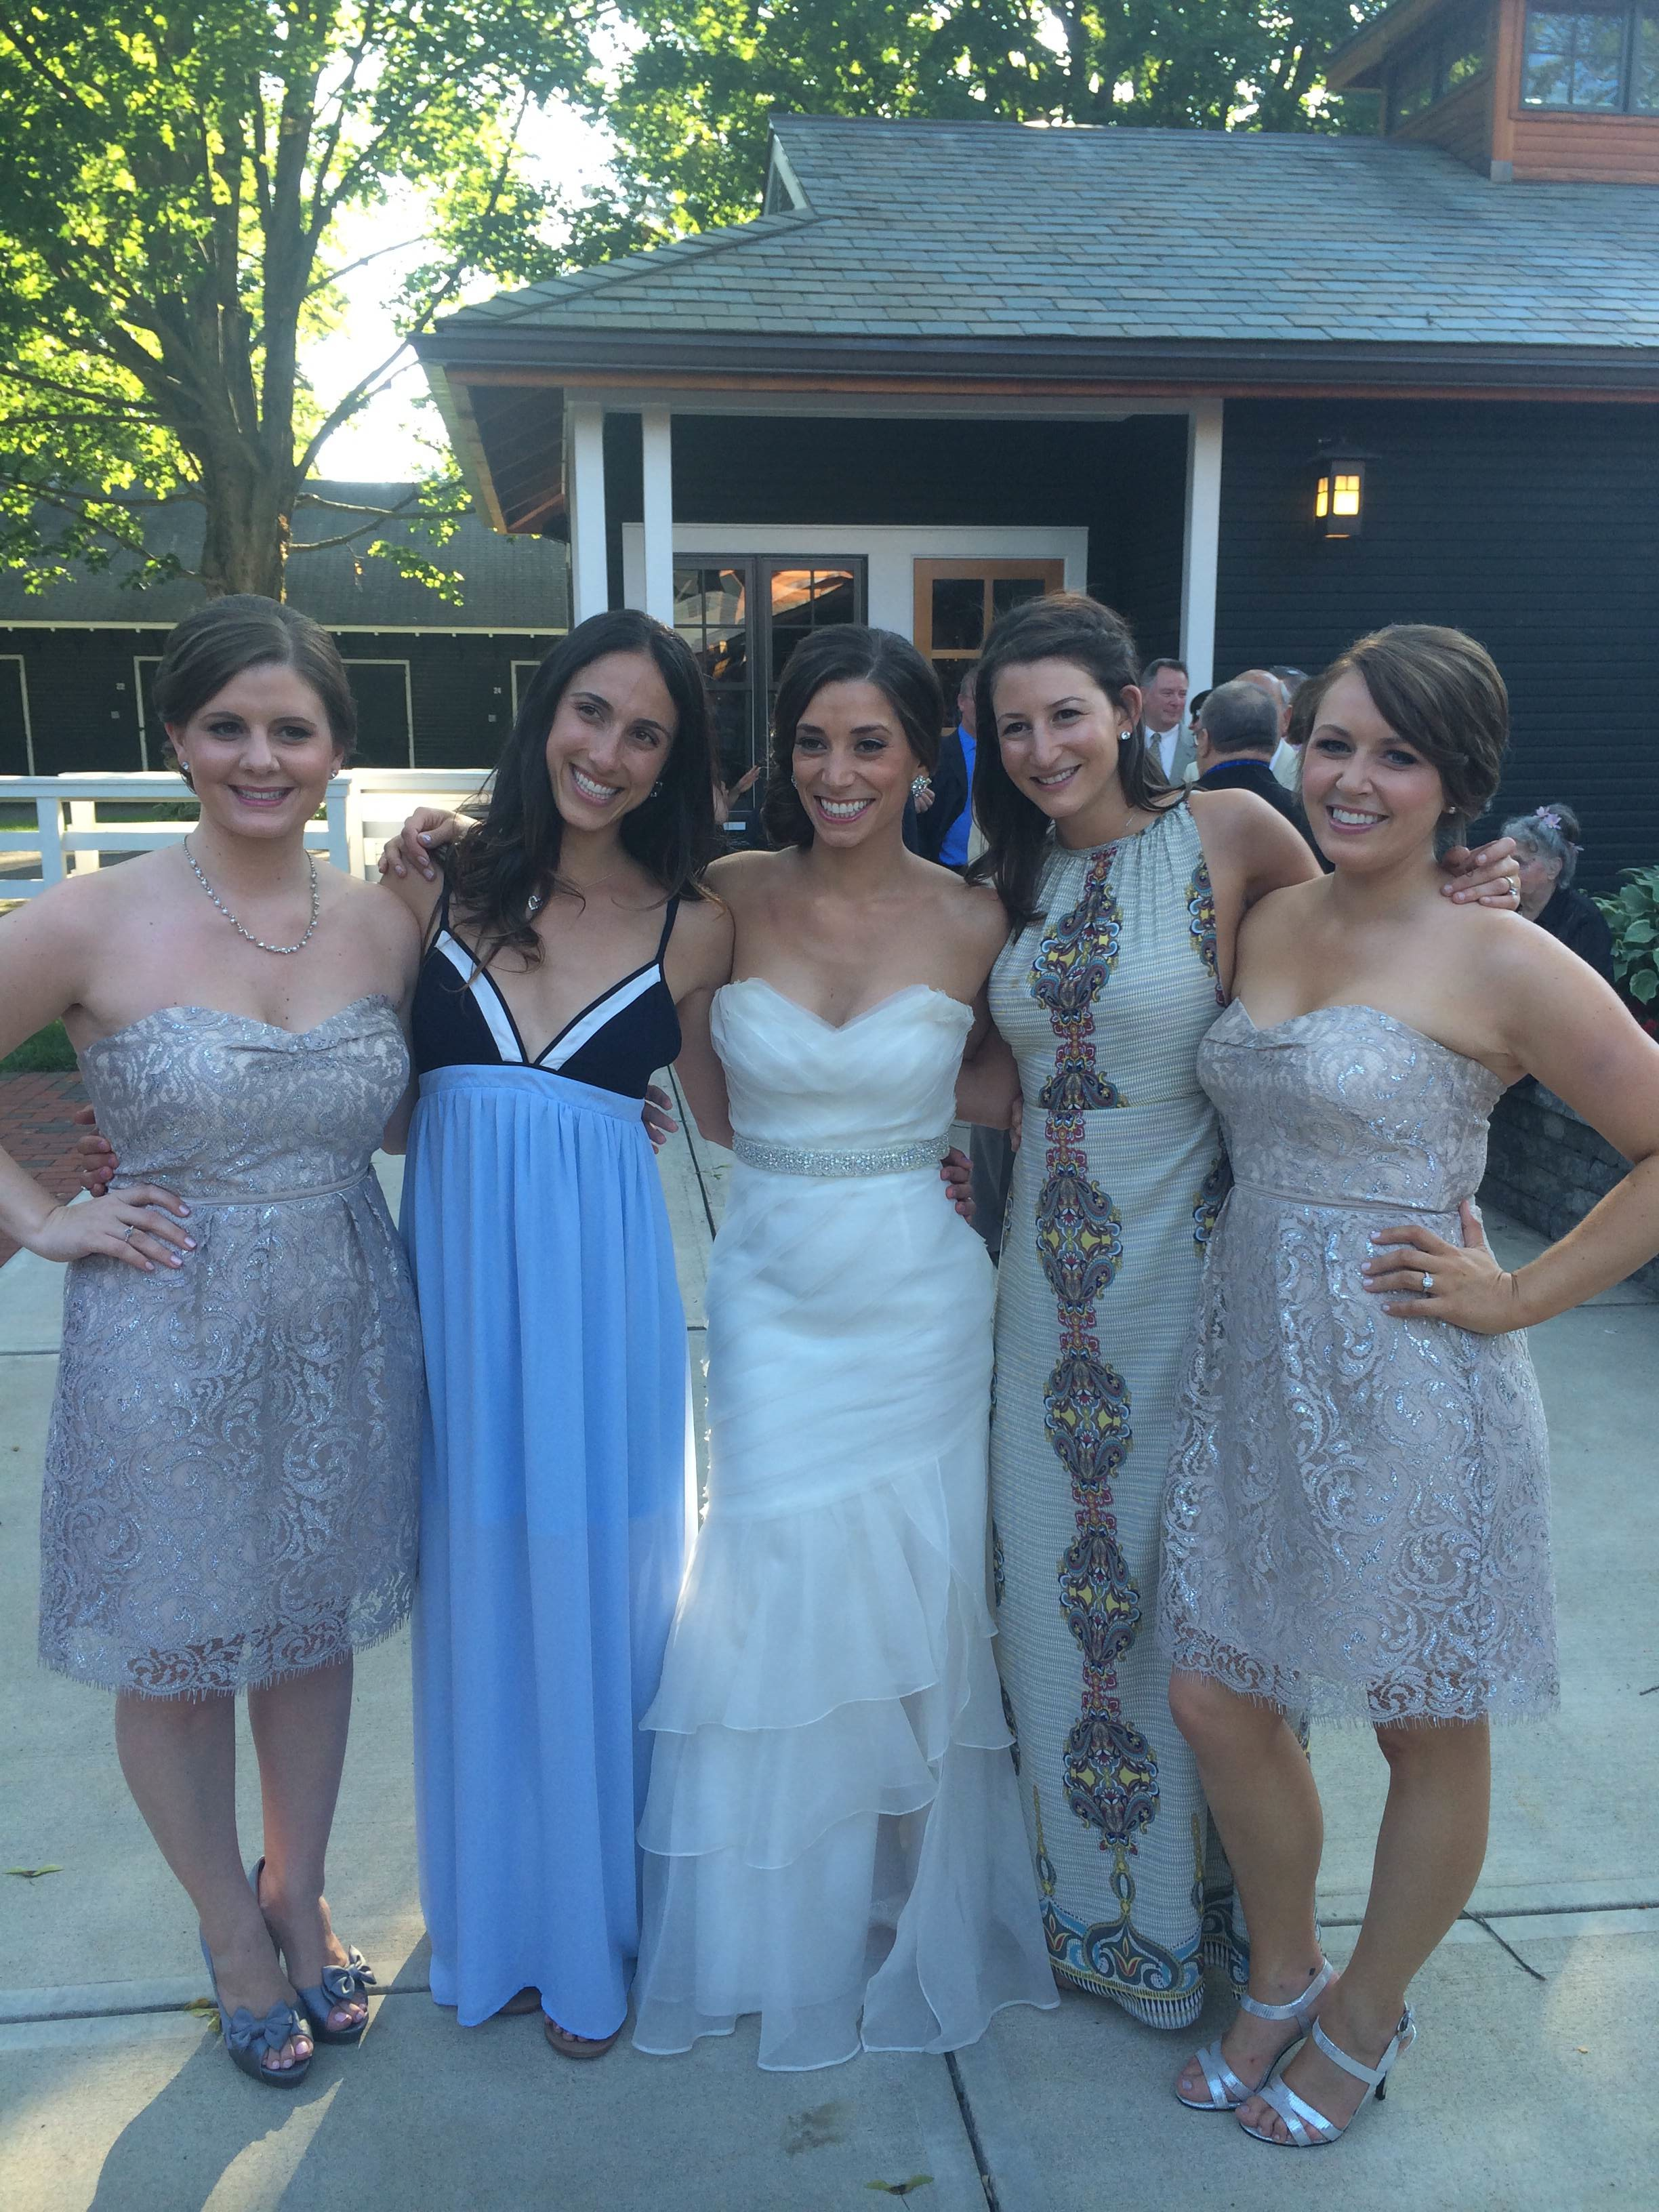 stoughton cre barbaras wedding.jpg